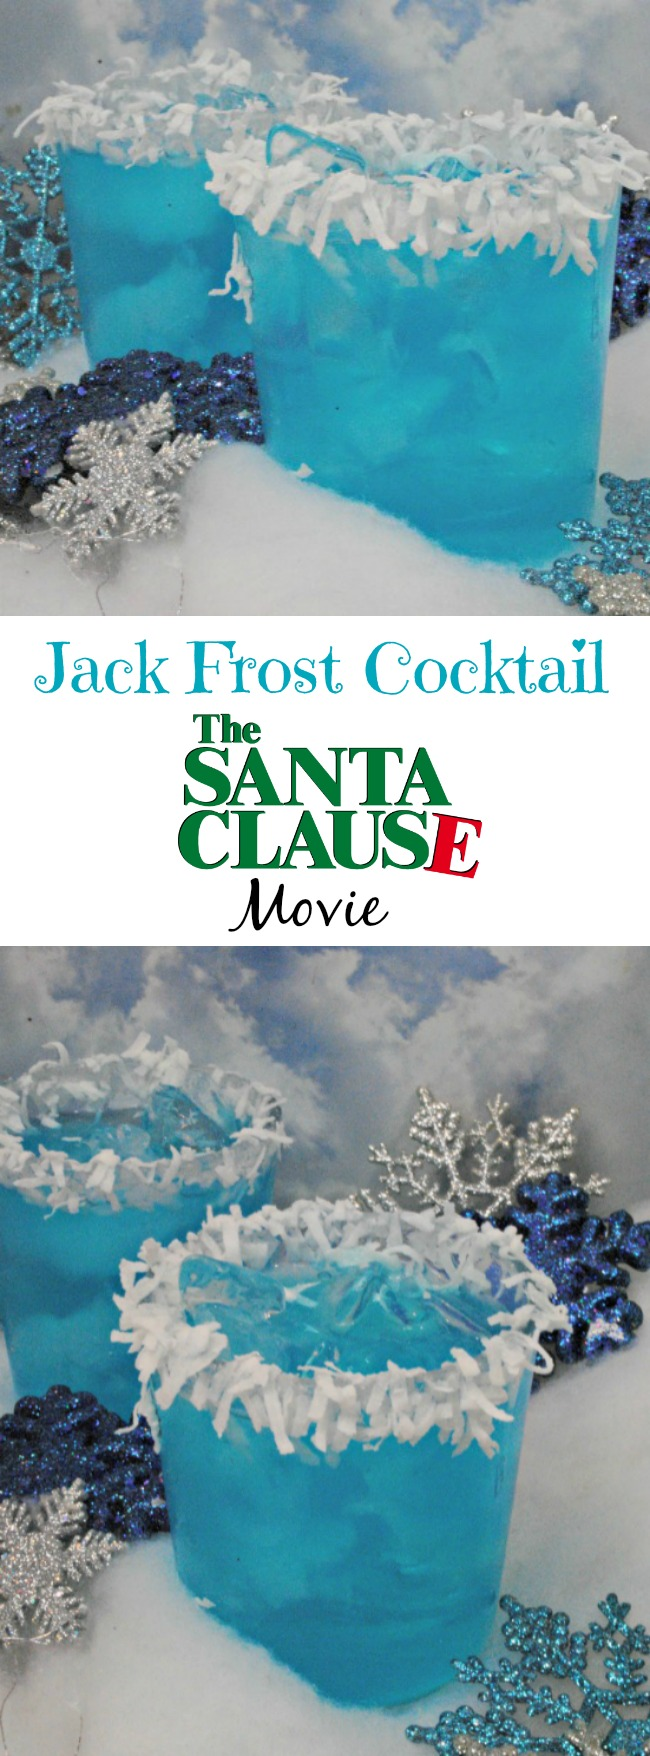 Last week I shared The Santa Clause movie cocktail recipe and today we have a fun Jack Frost Cocktail recipe from the movie also.